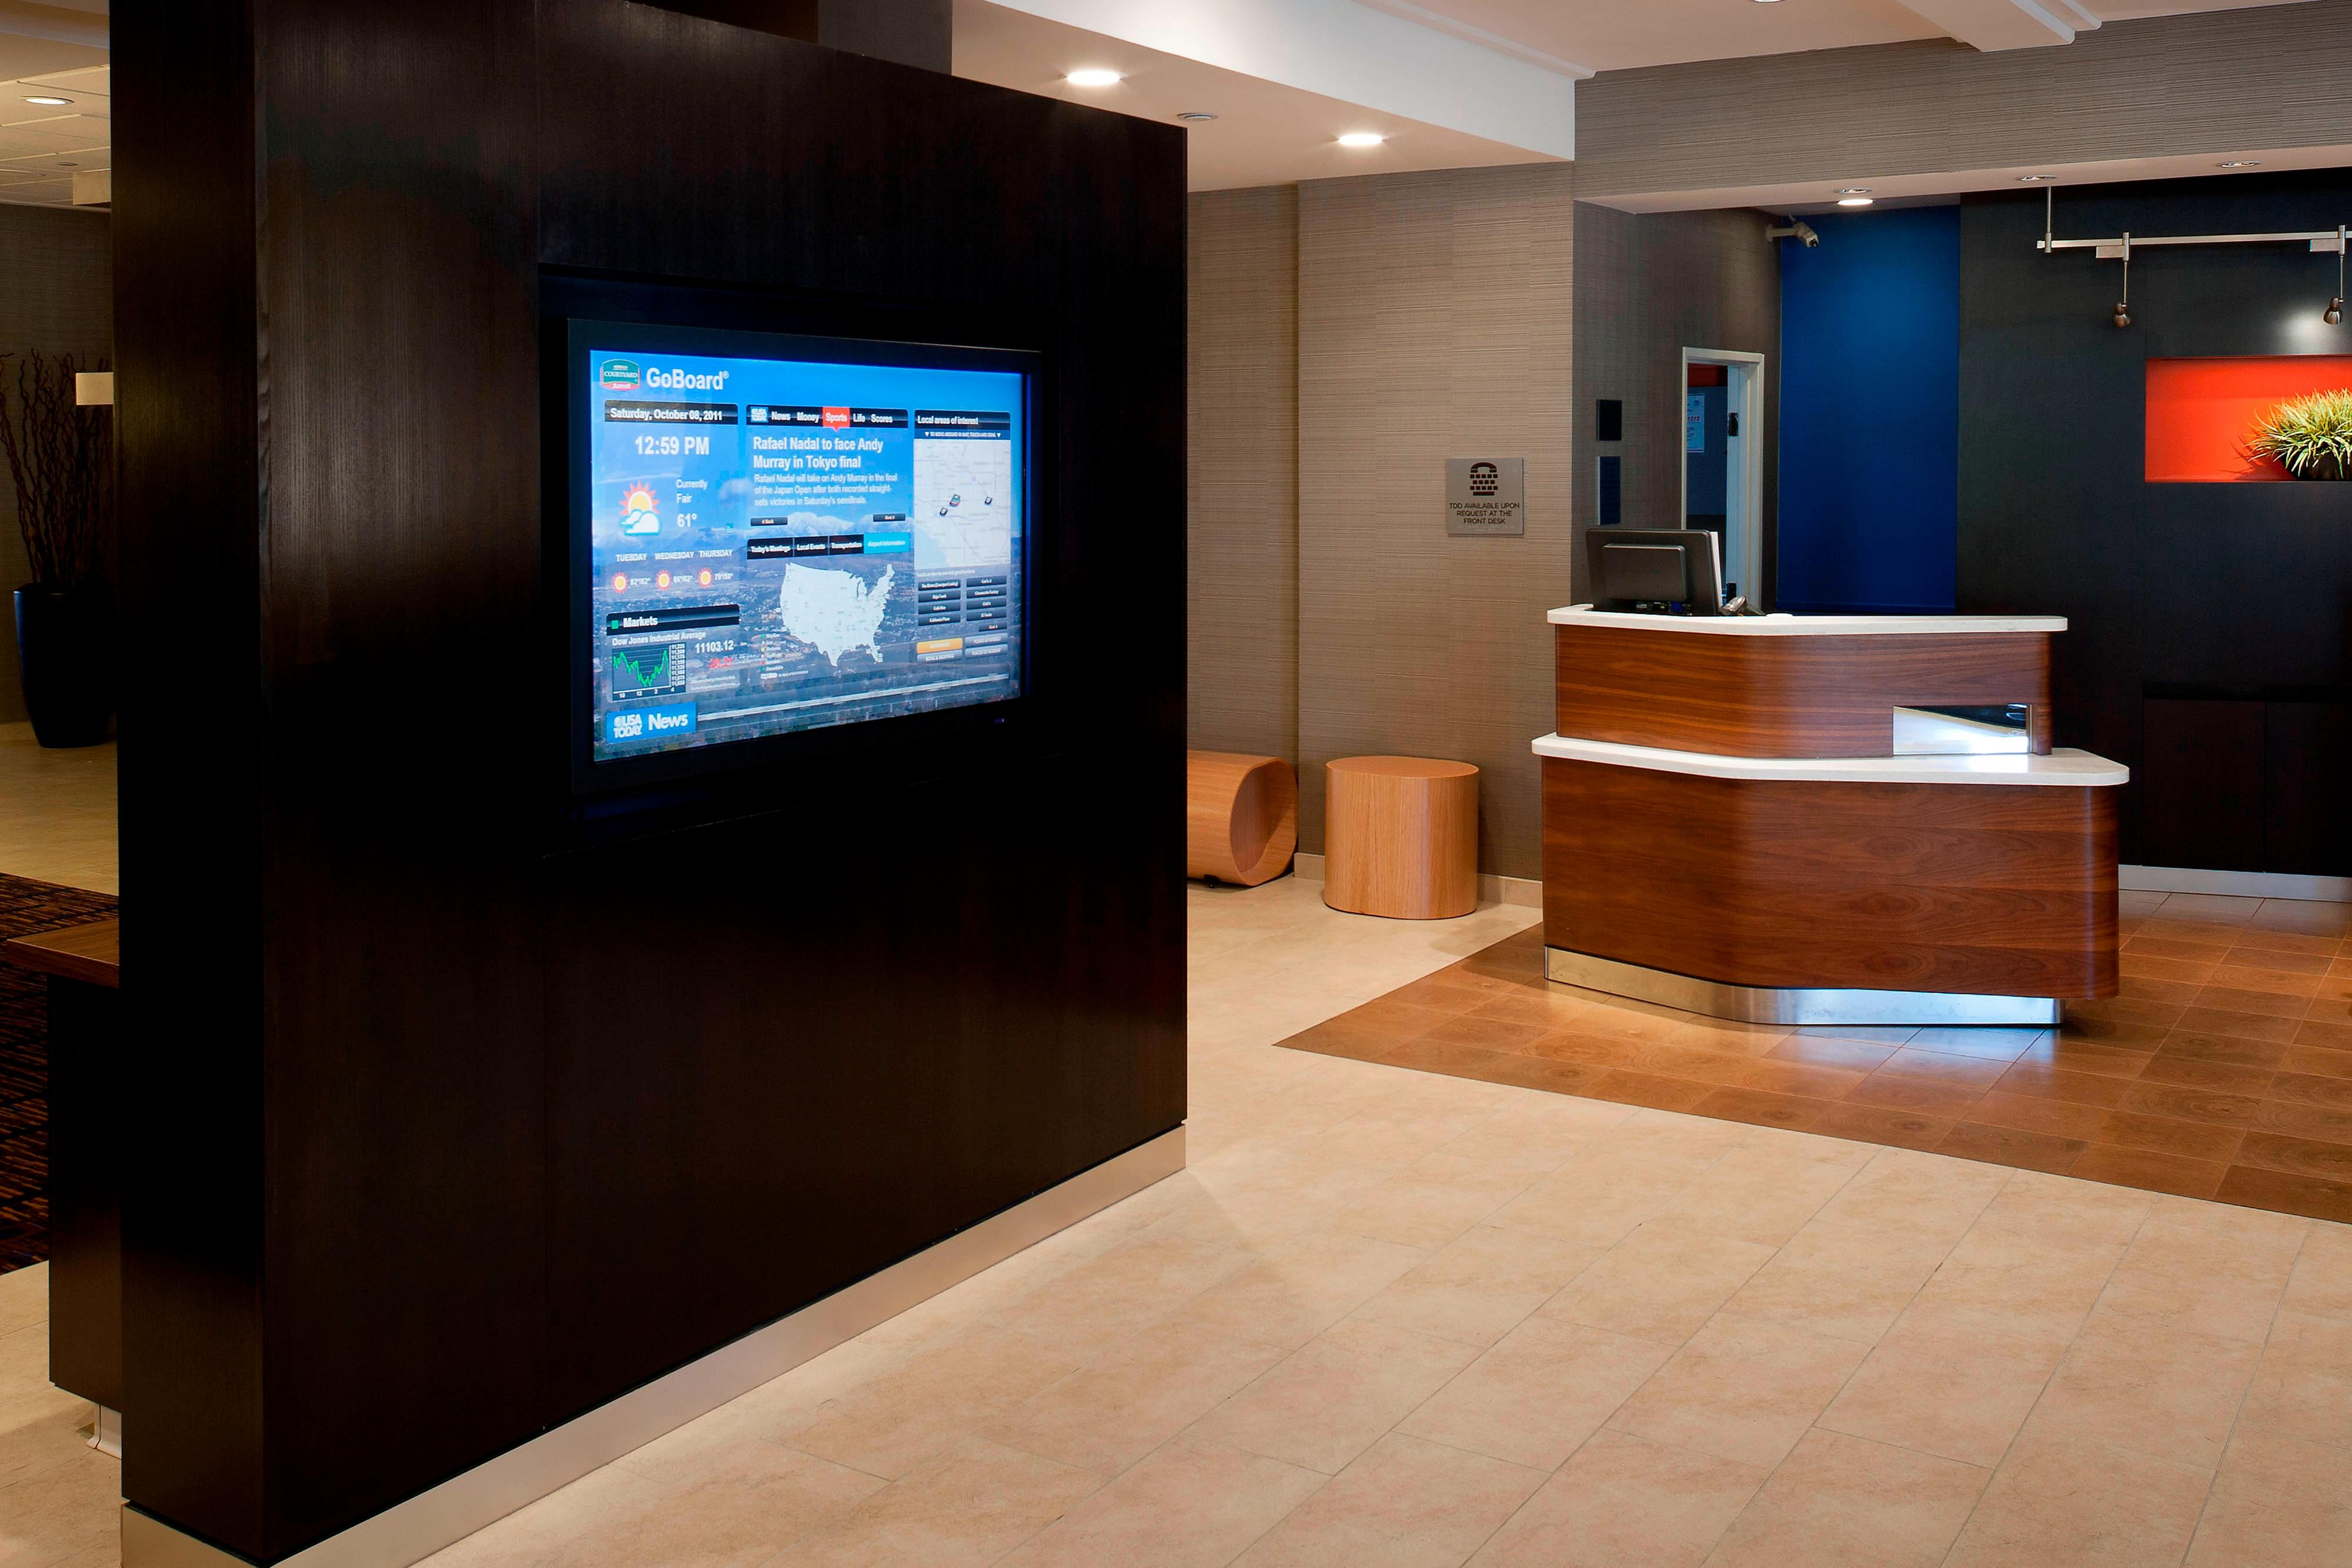 Lobby Touchscreen - Hotels in Cypress, CA